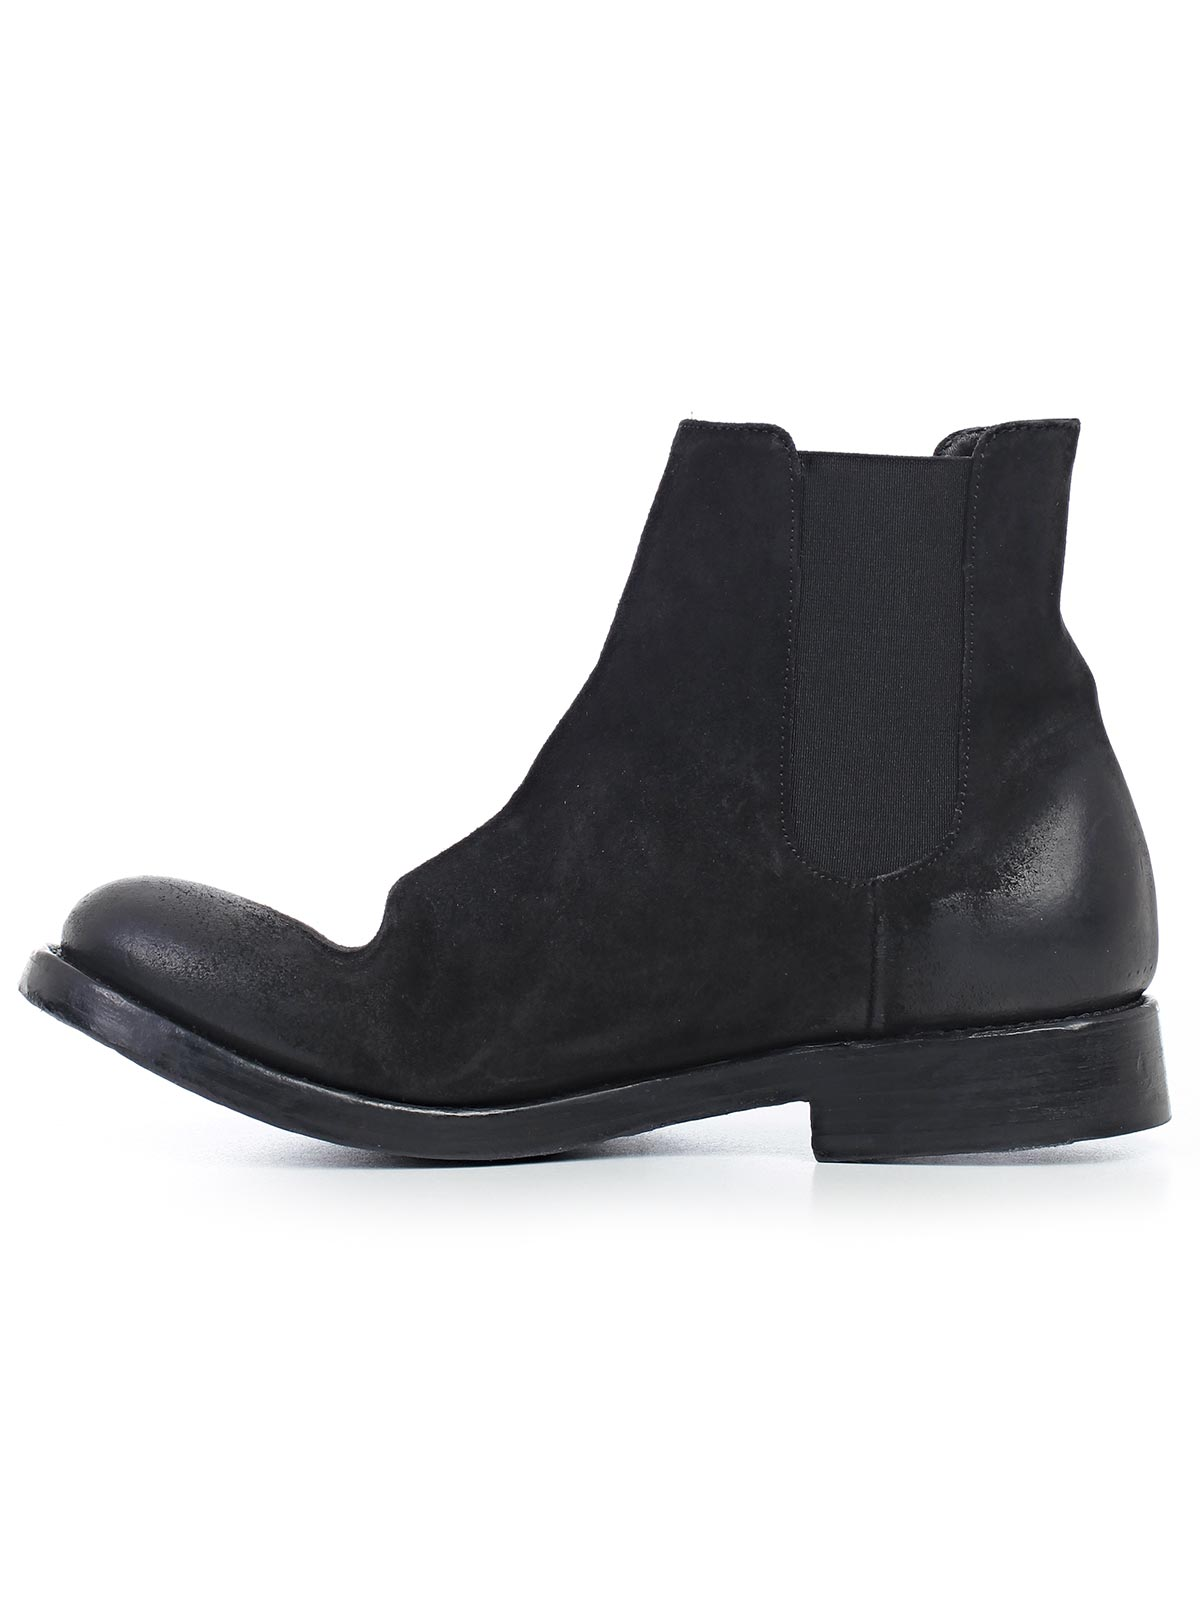 Picture of The Last Conspiracy Boots